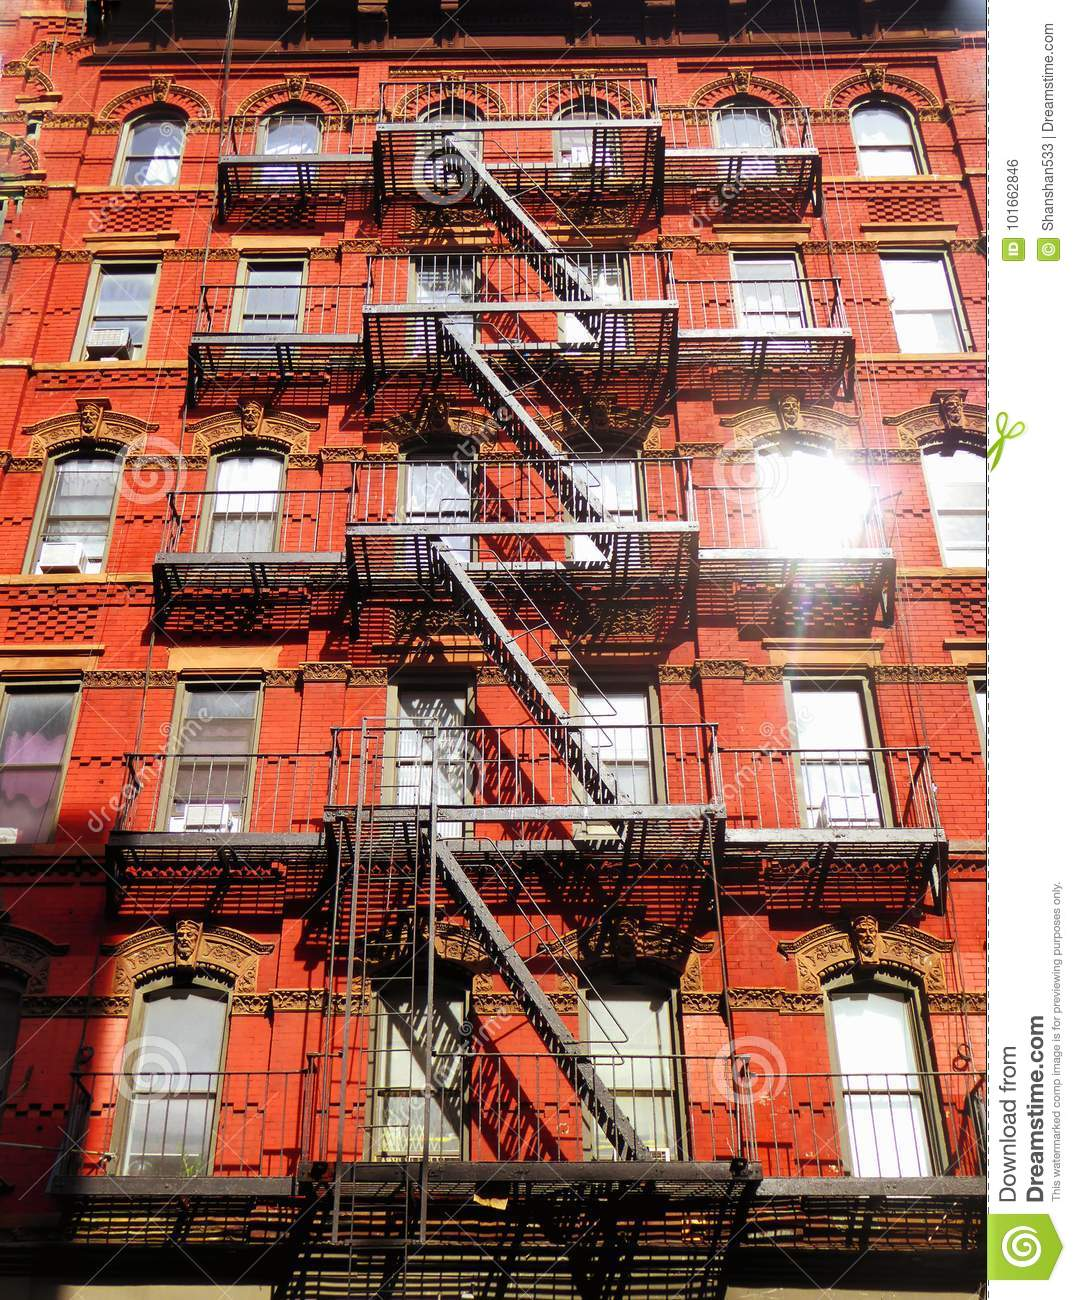 Cheap Apartments Outside Bricks: New York City Fire Escape Ladder Stock Photo